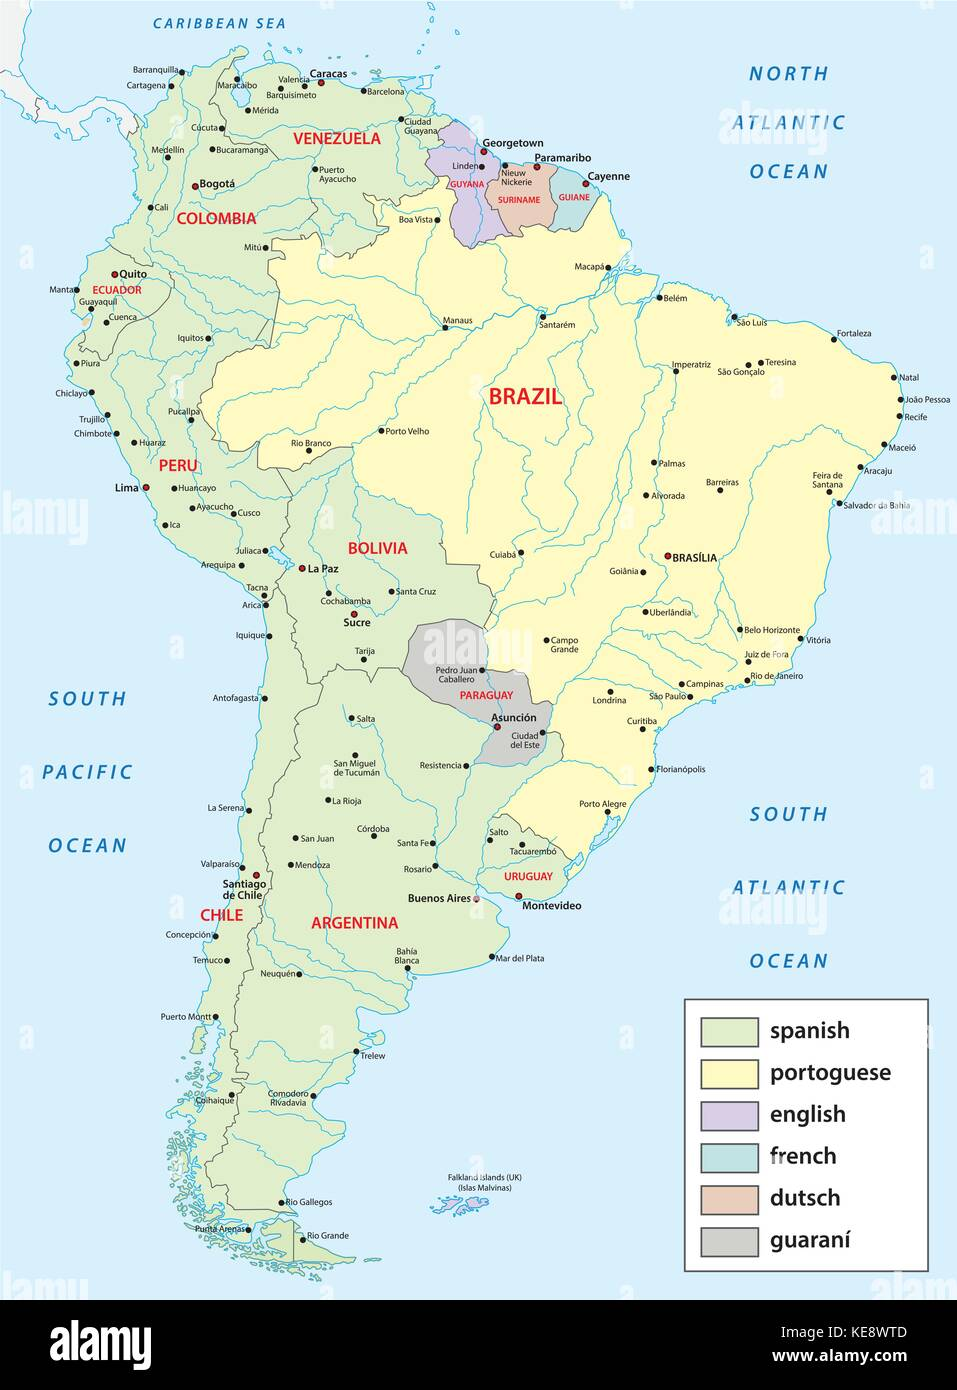 South America Map Spanish Stock Photos & South America Map Spanish ...